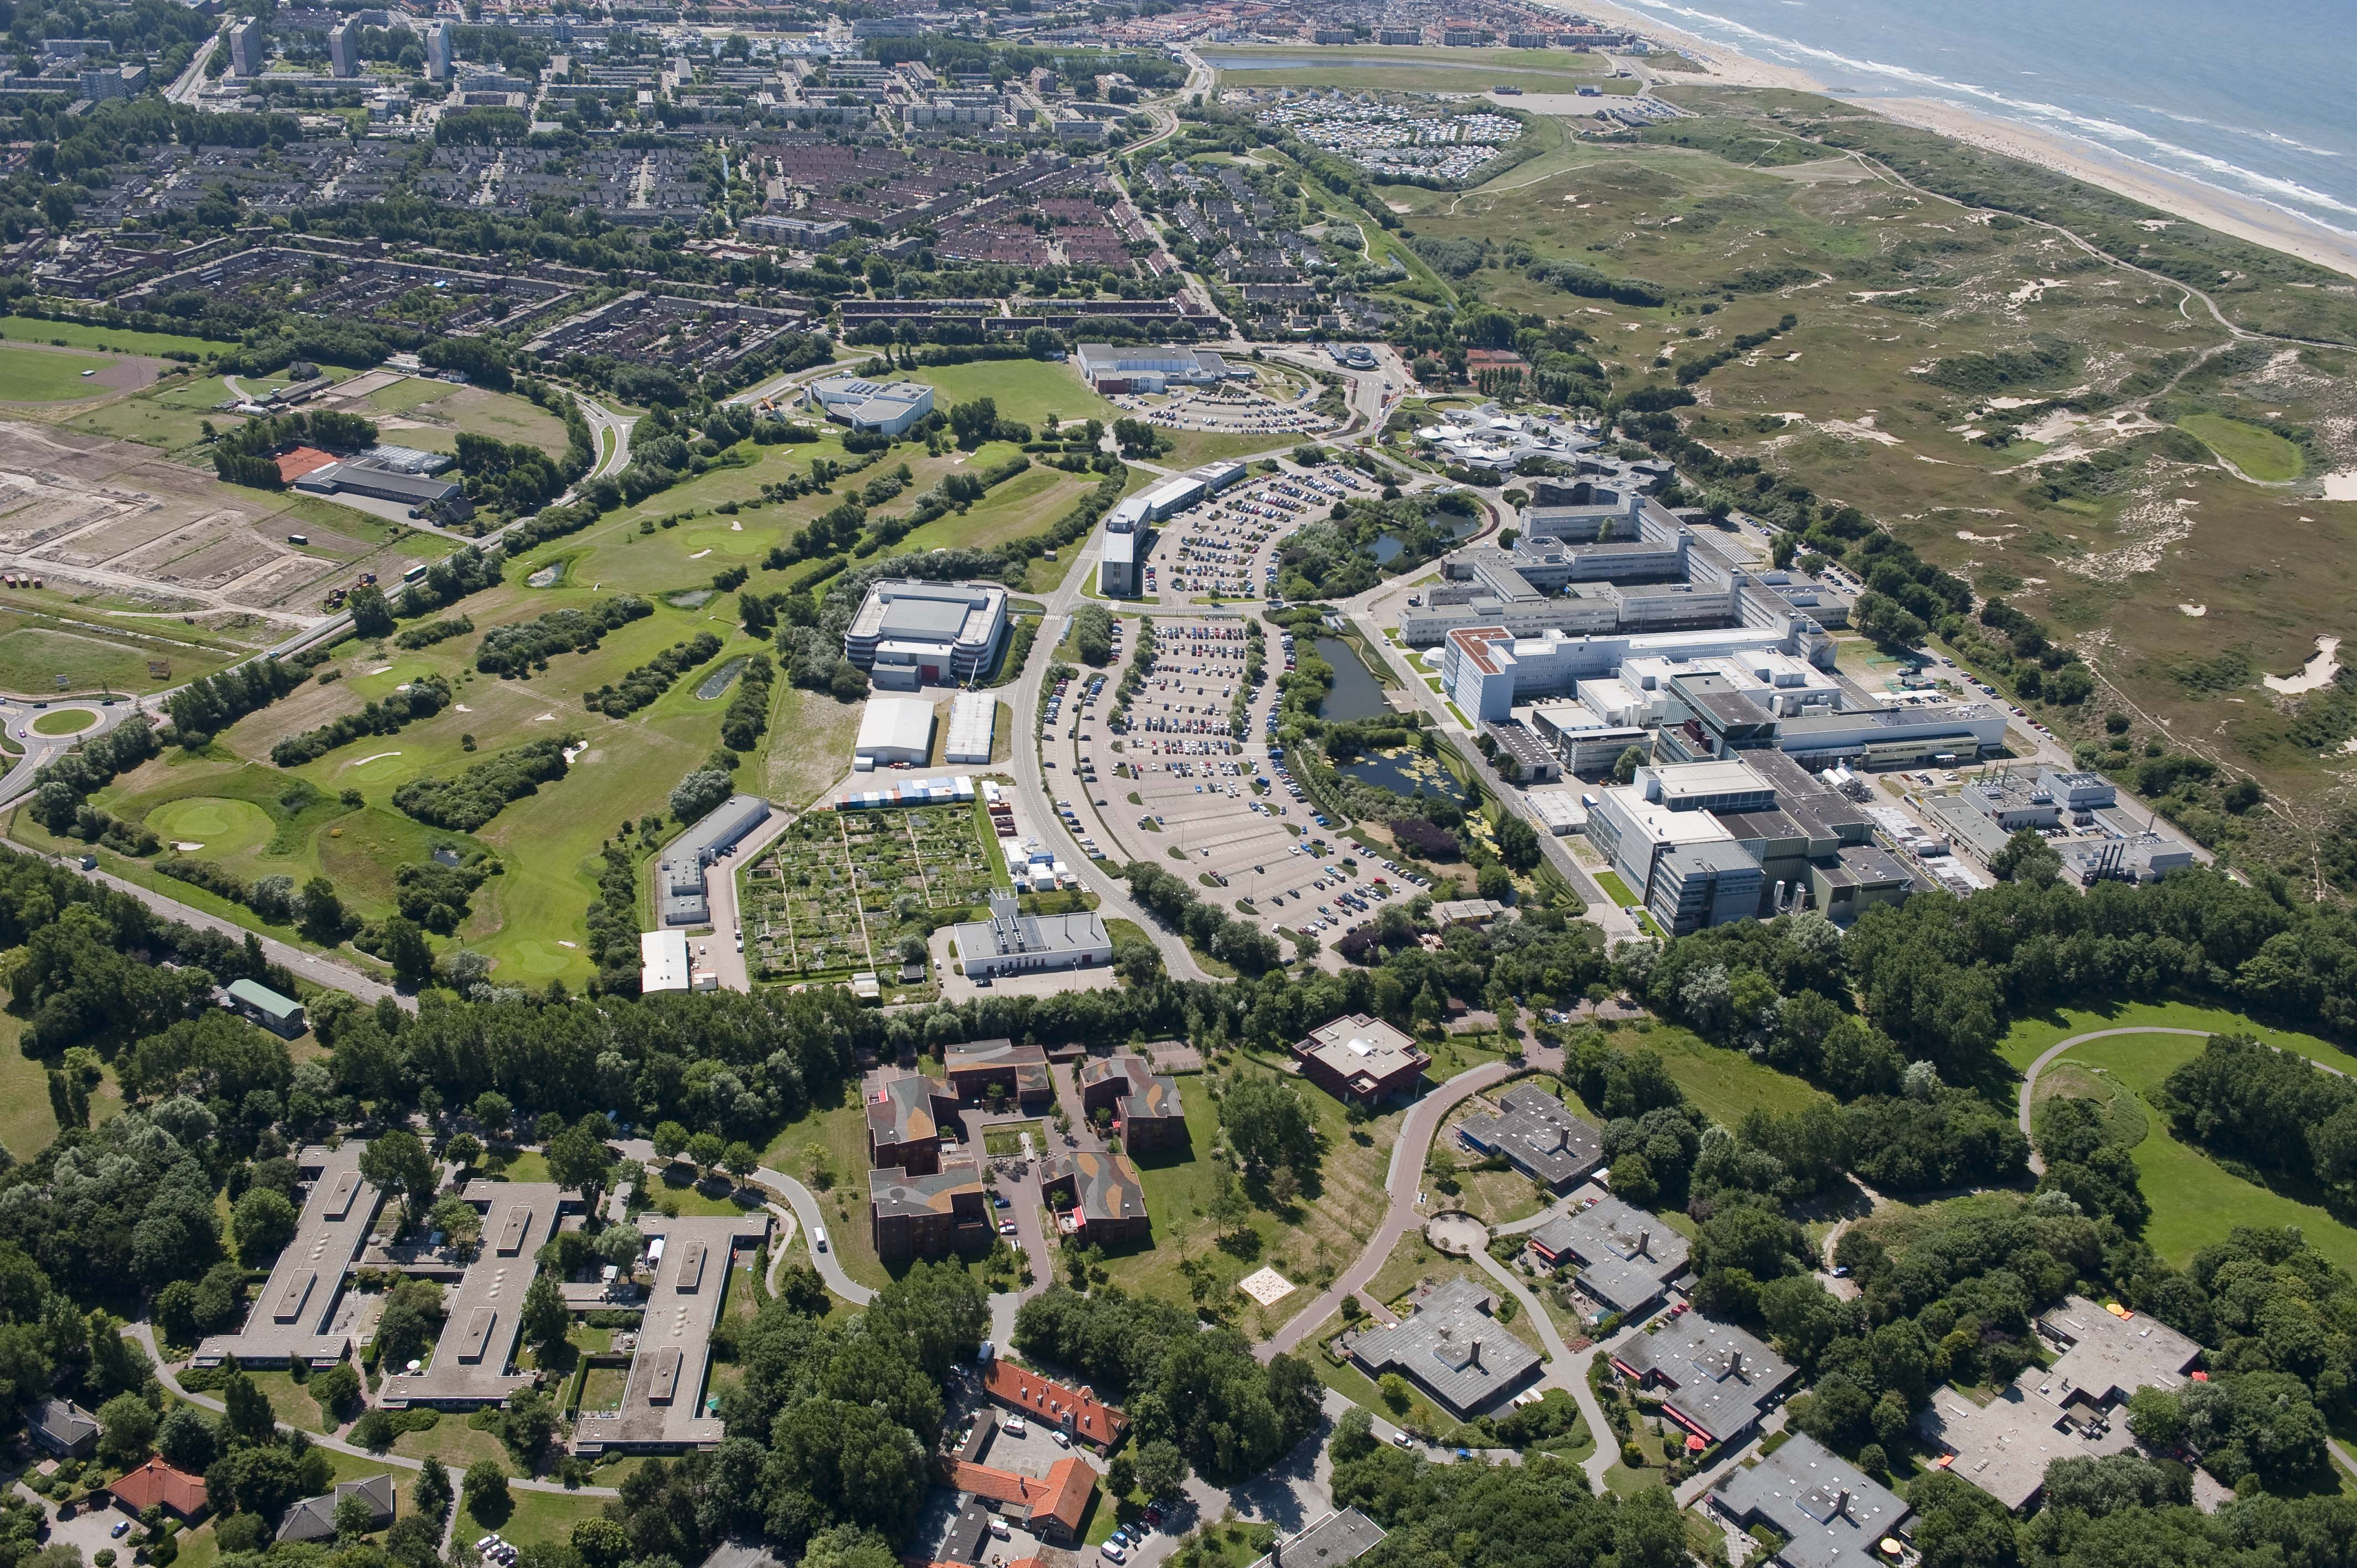 File:Aerial view of ESA s technical centre ESTEC.jpg - Wikimedia Commons